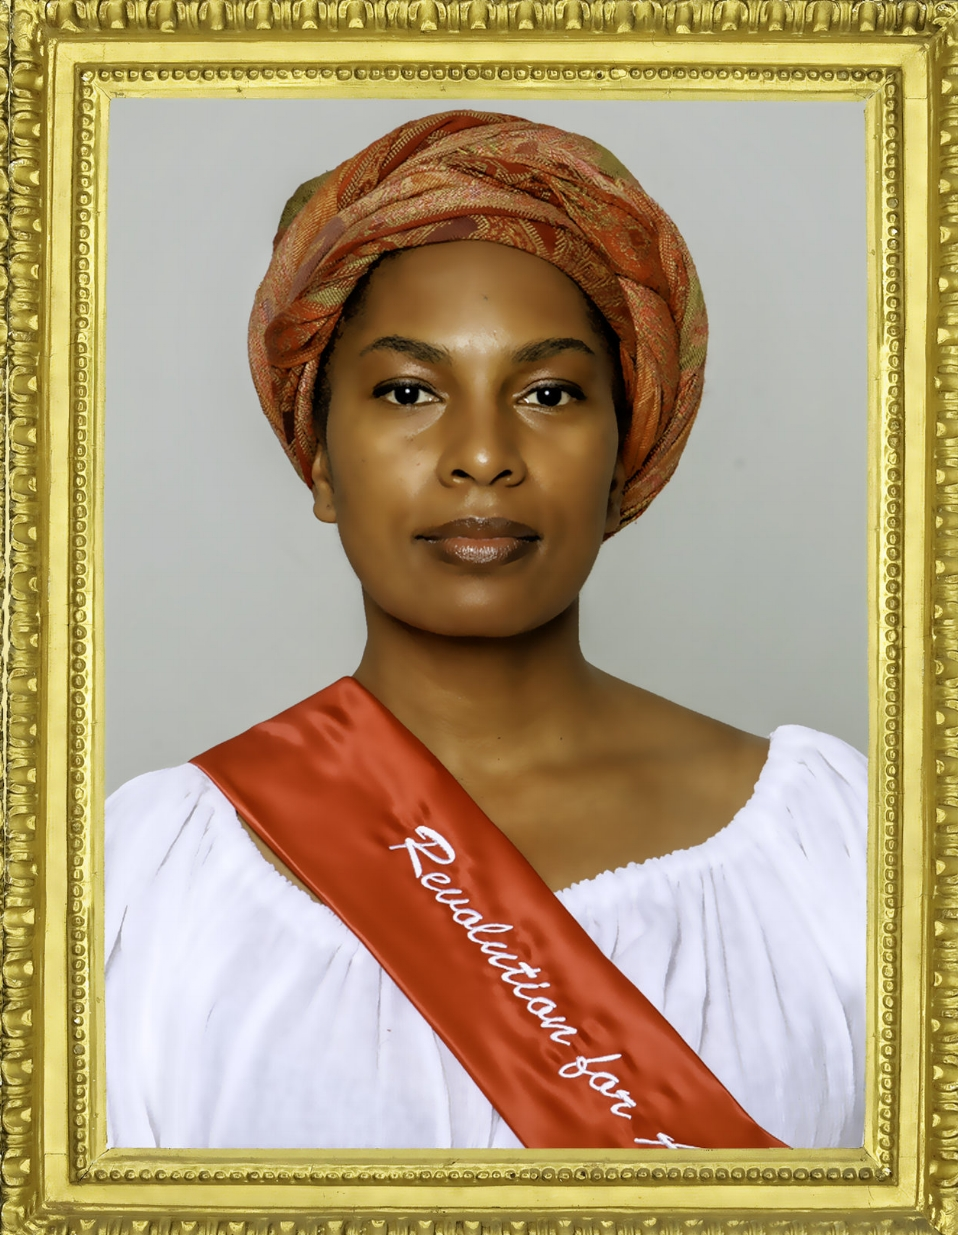 Kimberly Ridgeway as Marianne Angelle in The Revolutionists at Town Hall Theatre